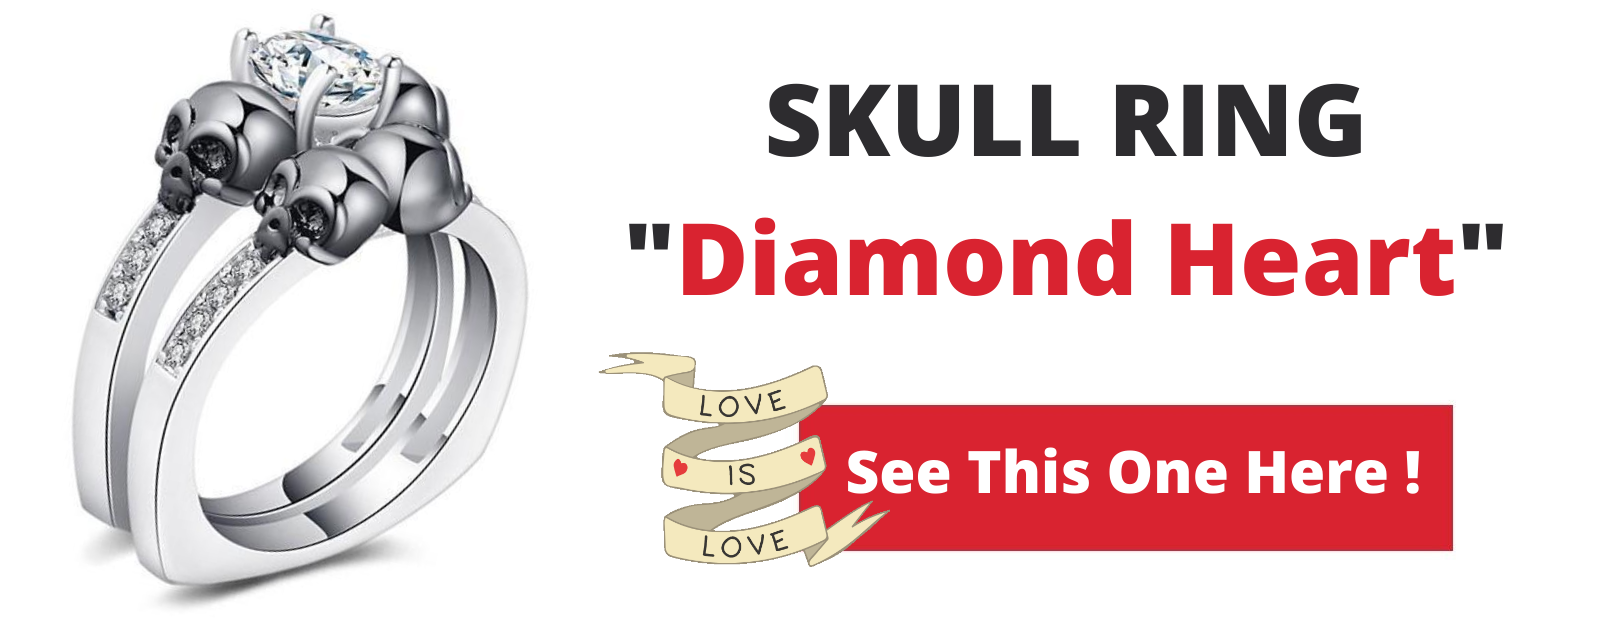 What do you think about men wearing skull rings?